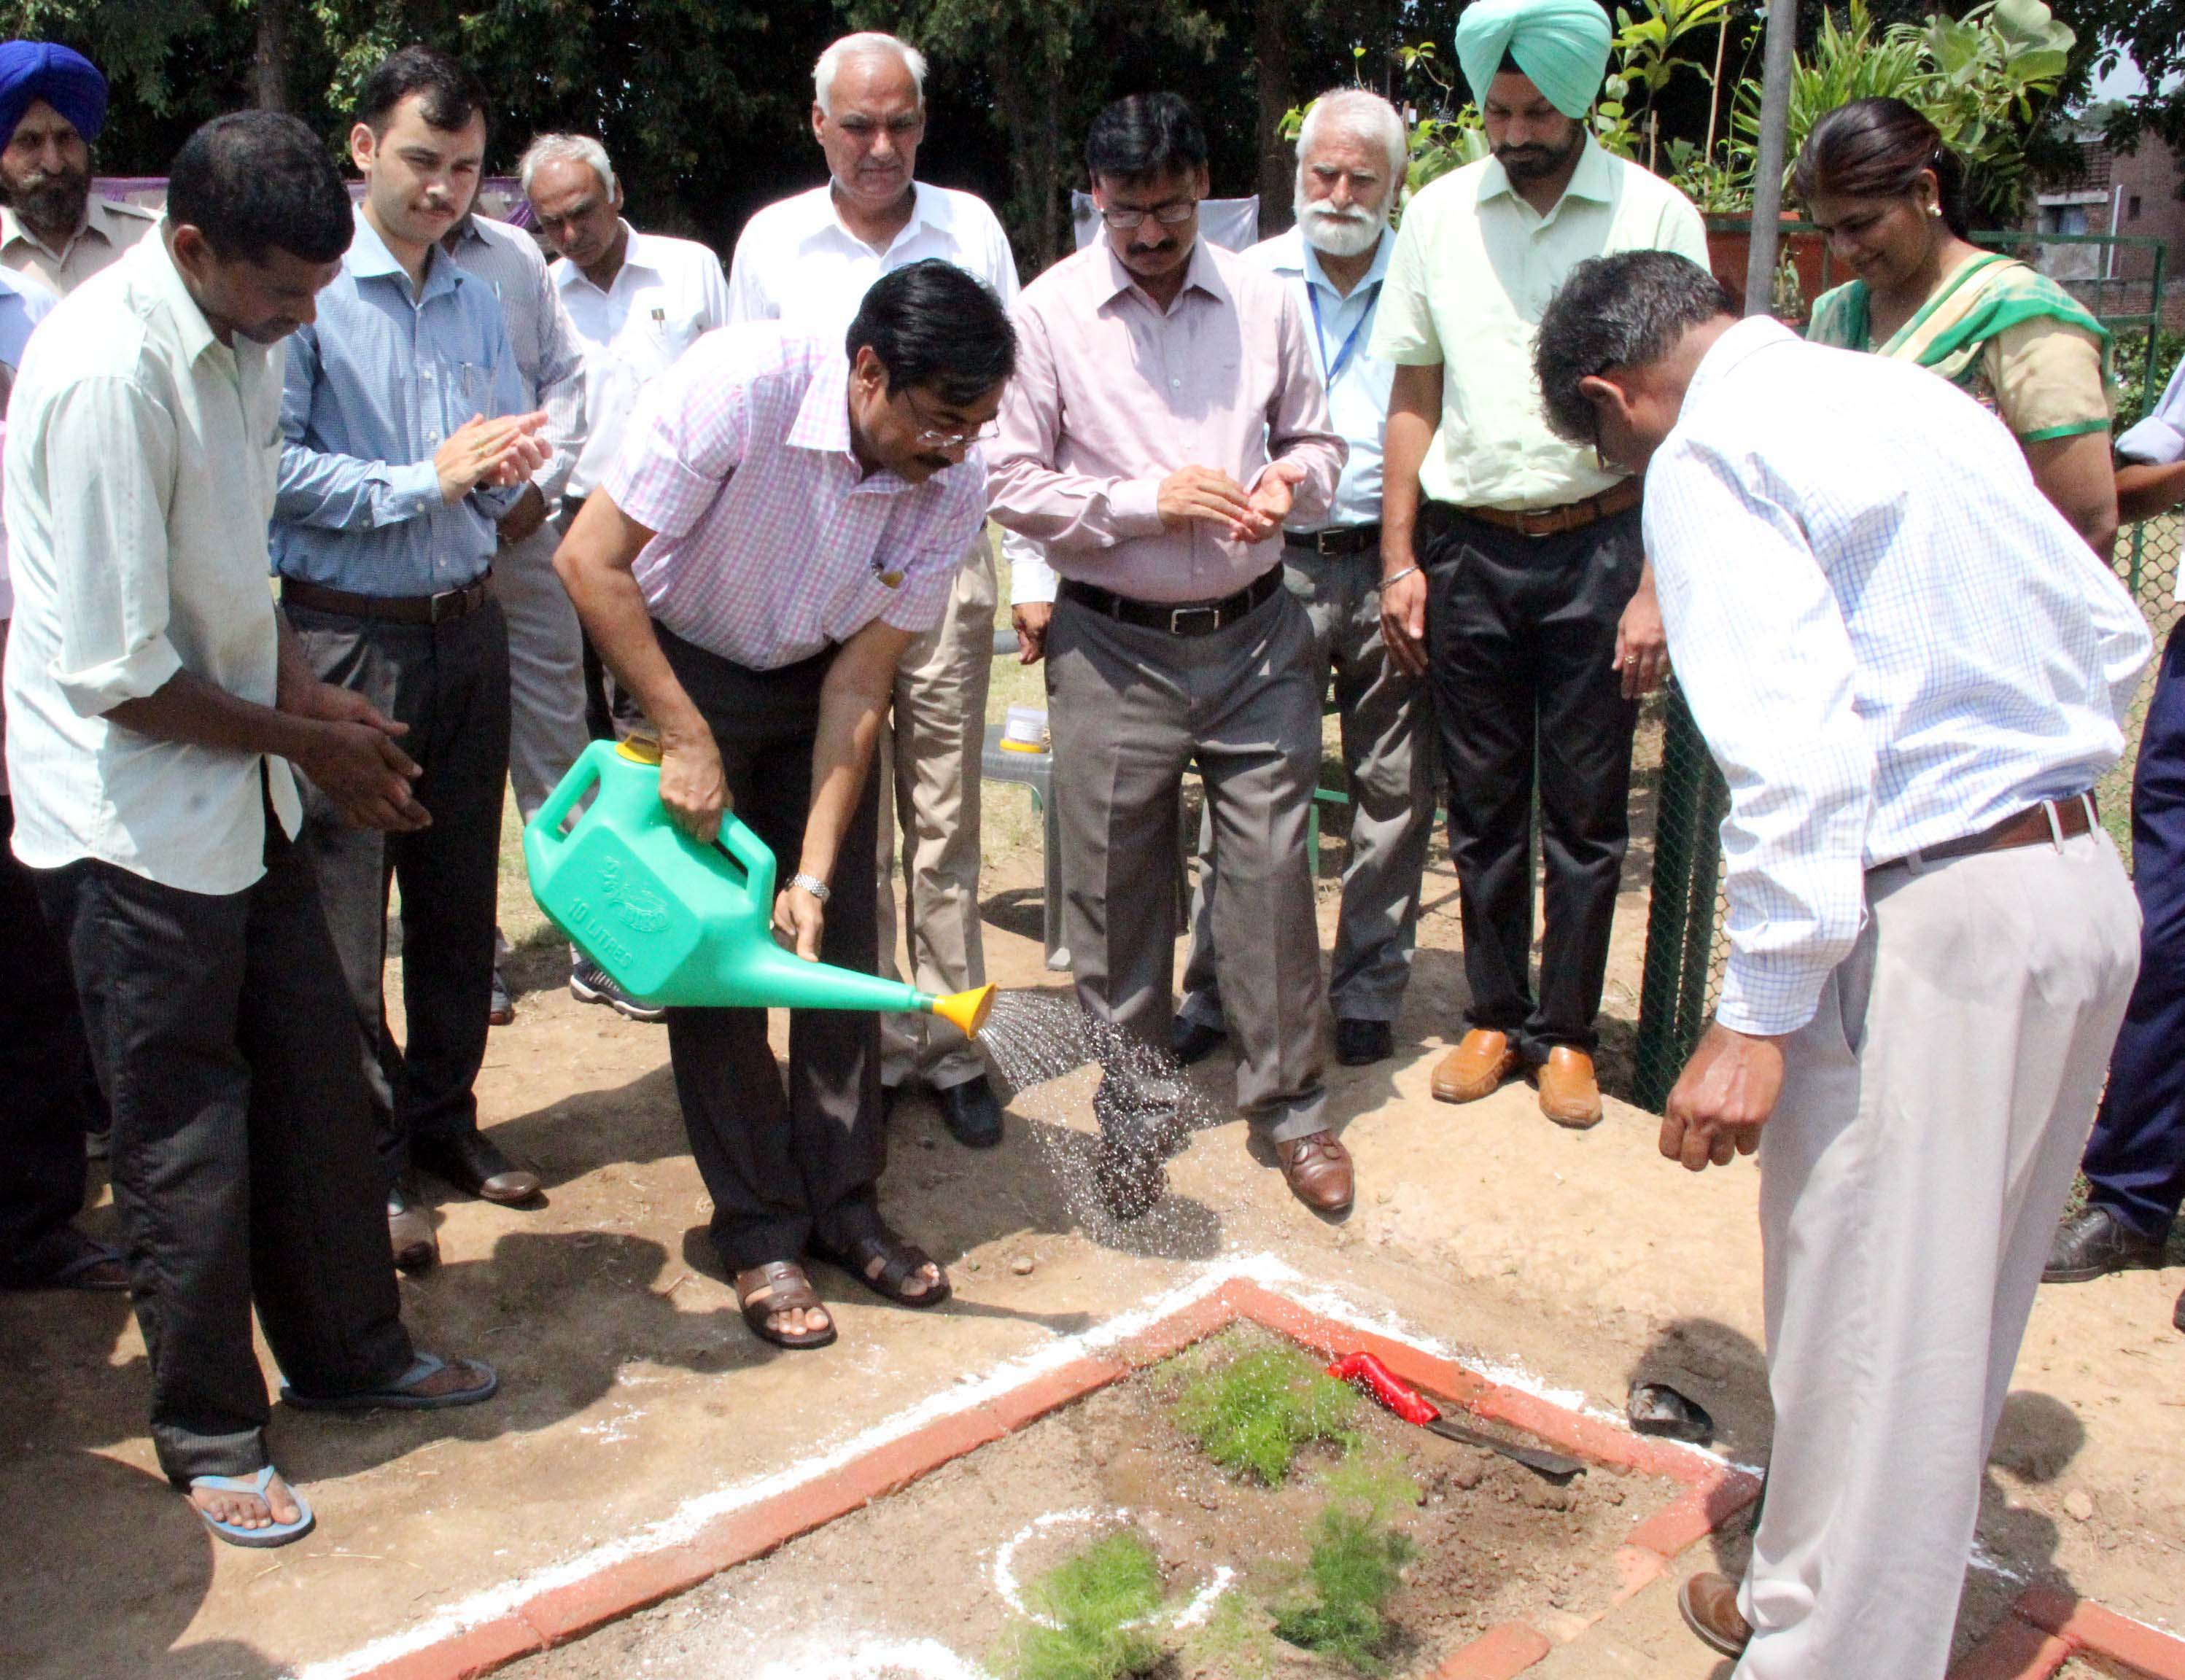 UT Home Secretary, Mr. Anil Kumar sprinkling water on the sapling of SHATAVARI on the celebration of HERBAL DAY -2014 at Rose Nursery, Sector-23, Chandigarh on Wednesday, July 30, 2014.